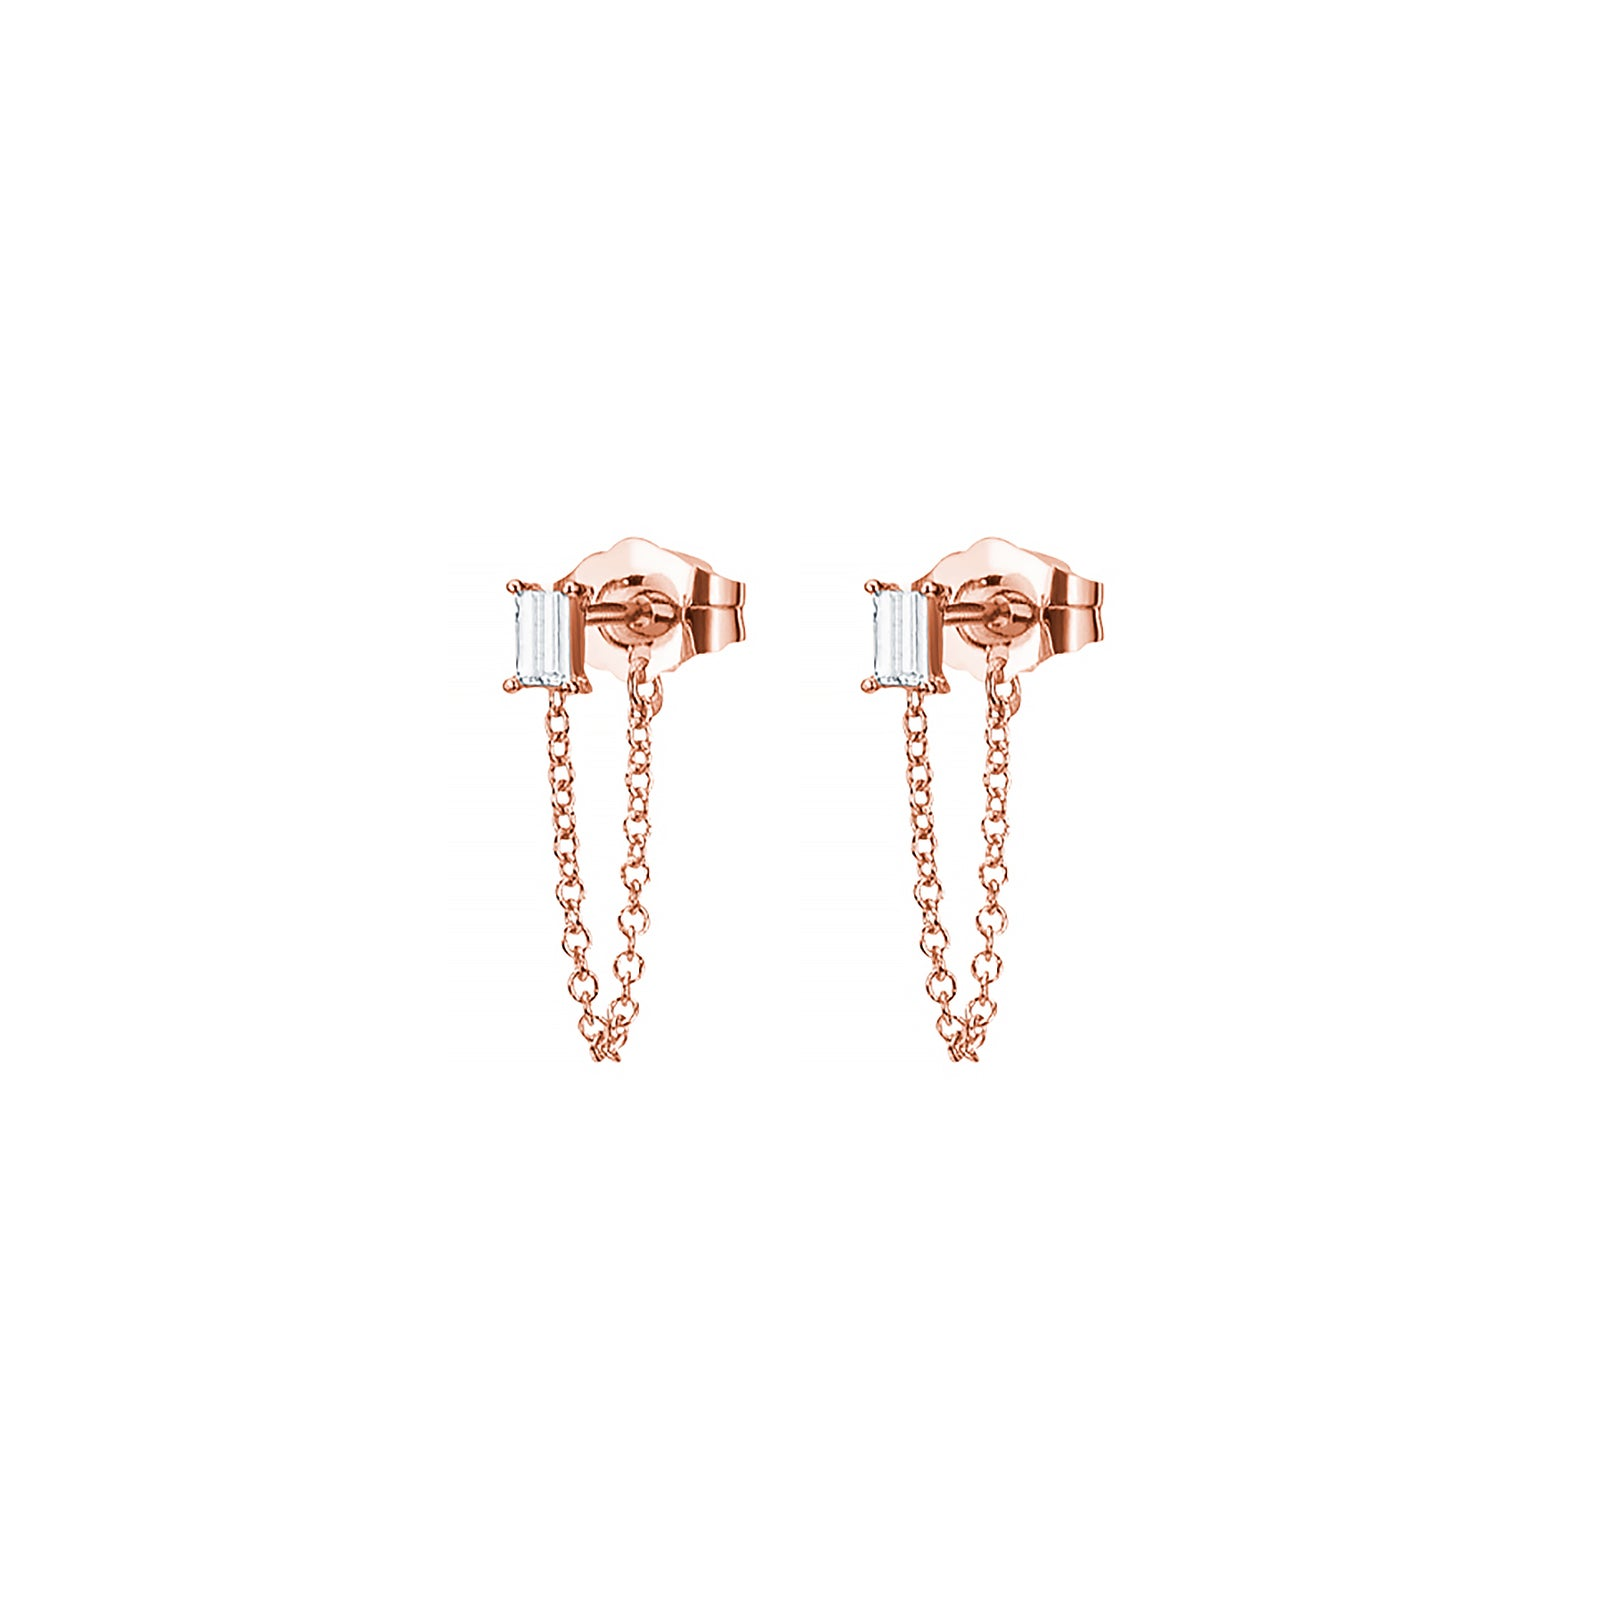 Carbon & Hyde Baguette Diamond Chain Huggies - Rose Gold - Earrings - Broken English Jewelry